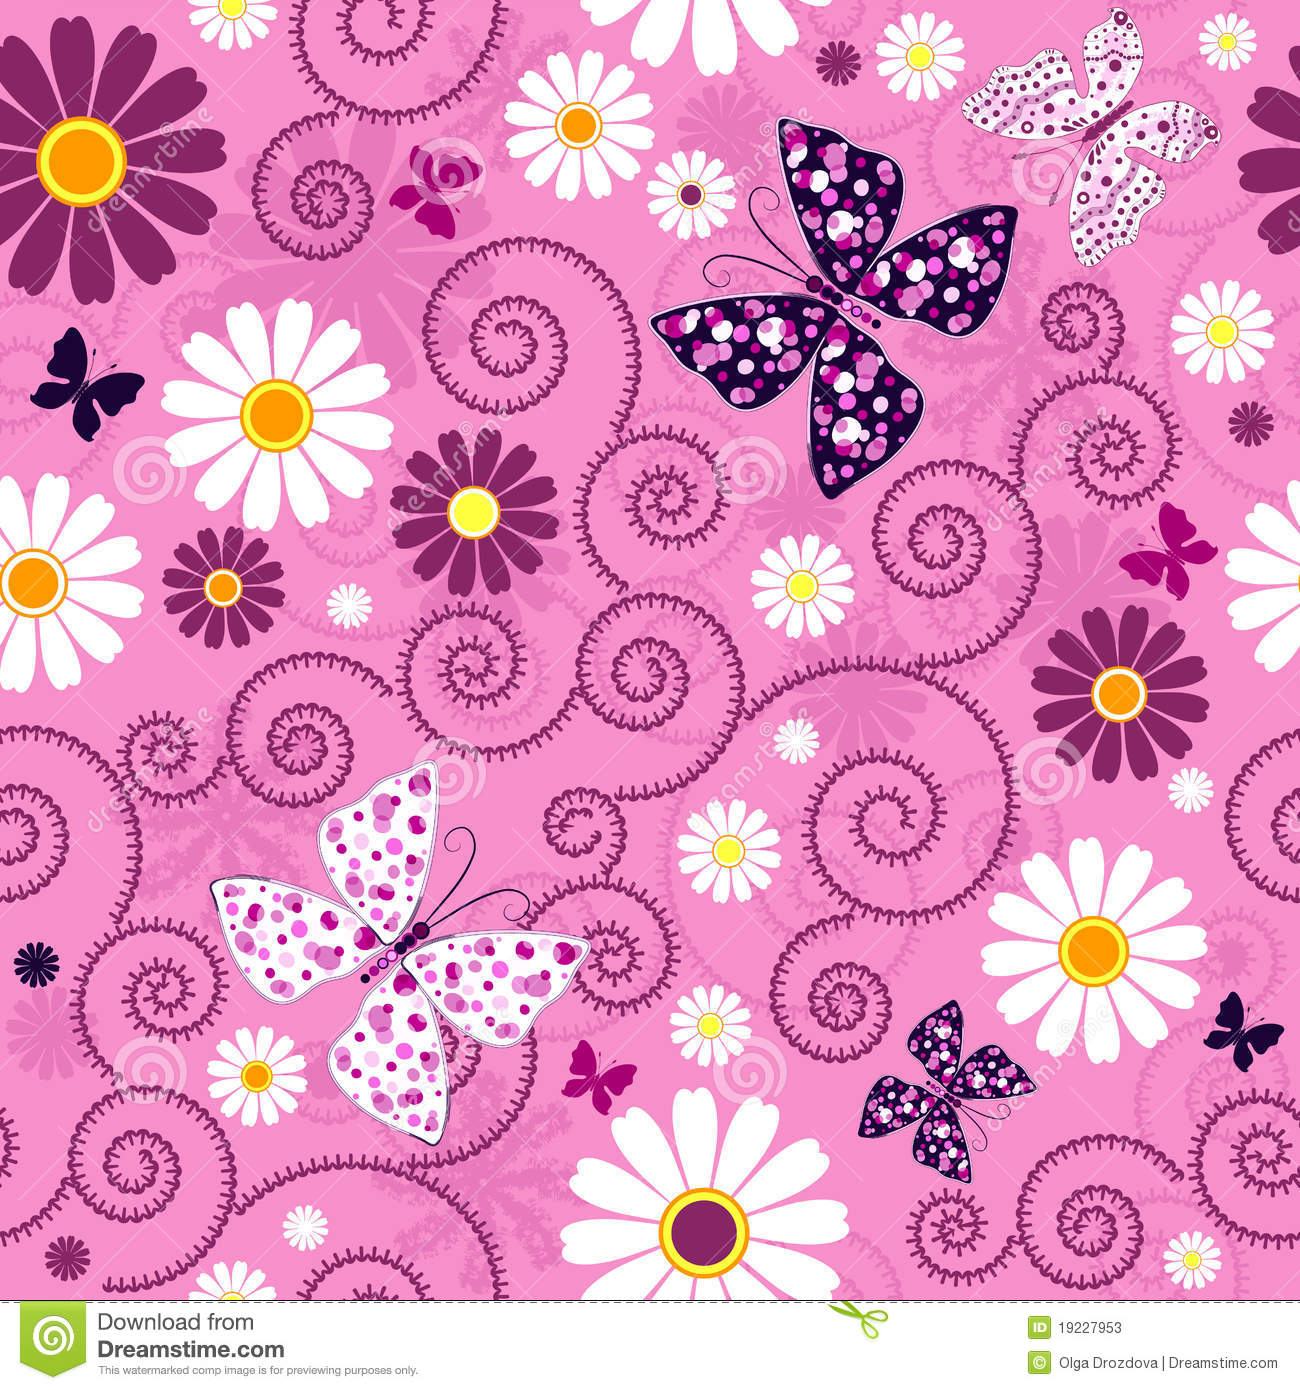 Seamless pink floral pattern - photo#2